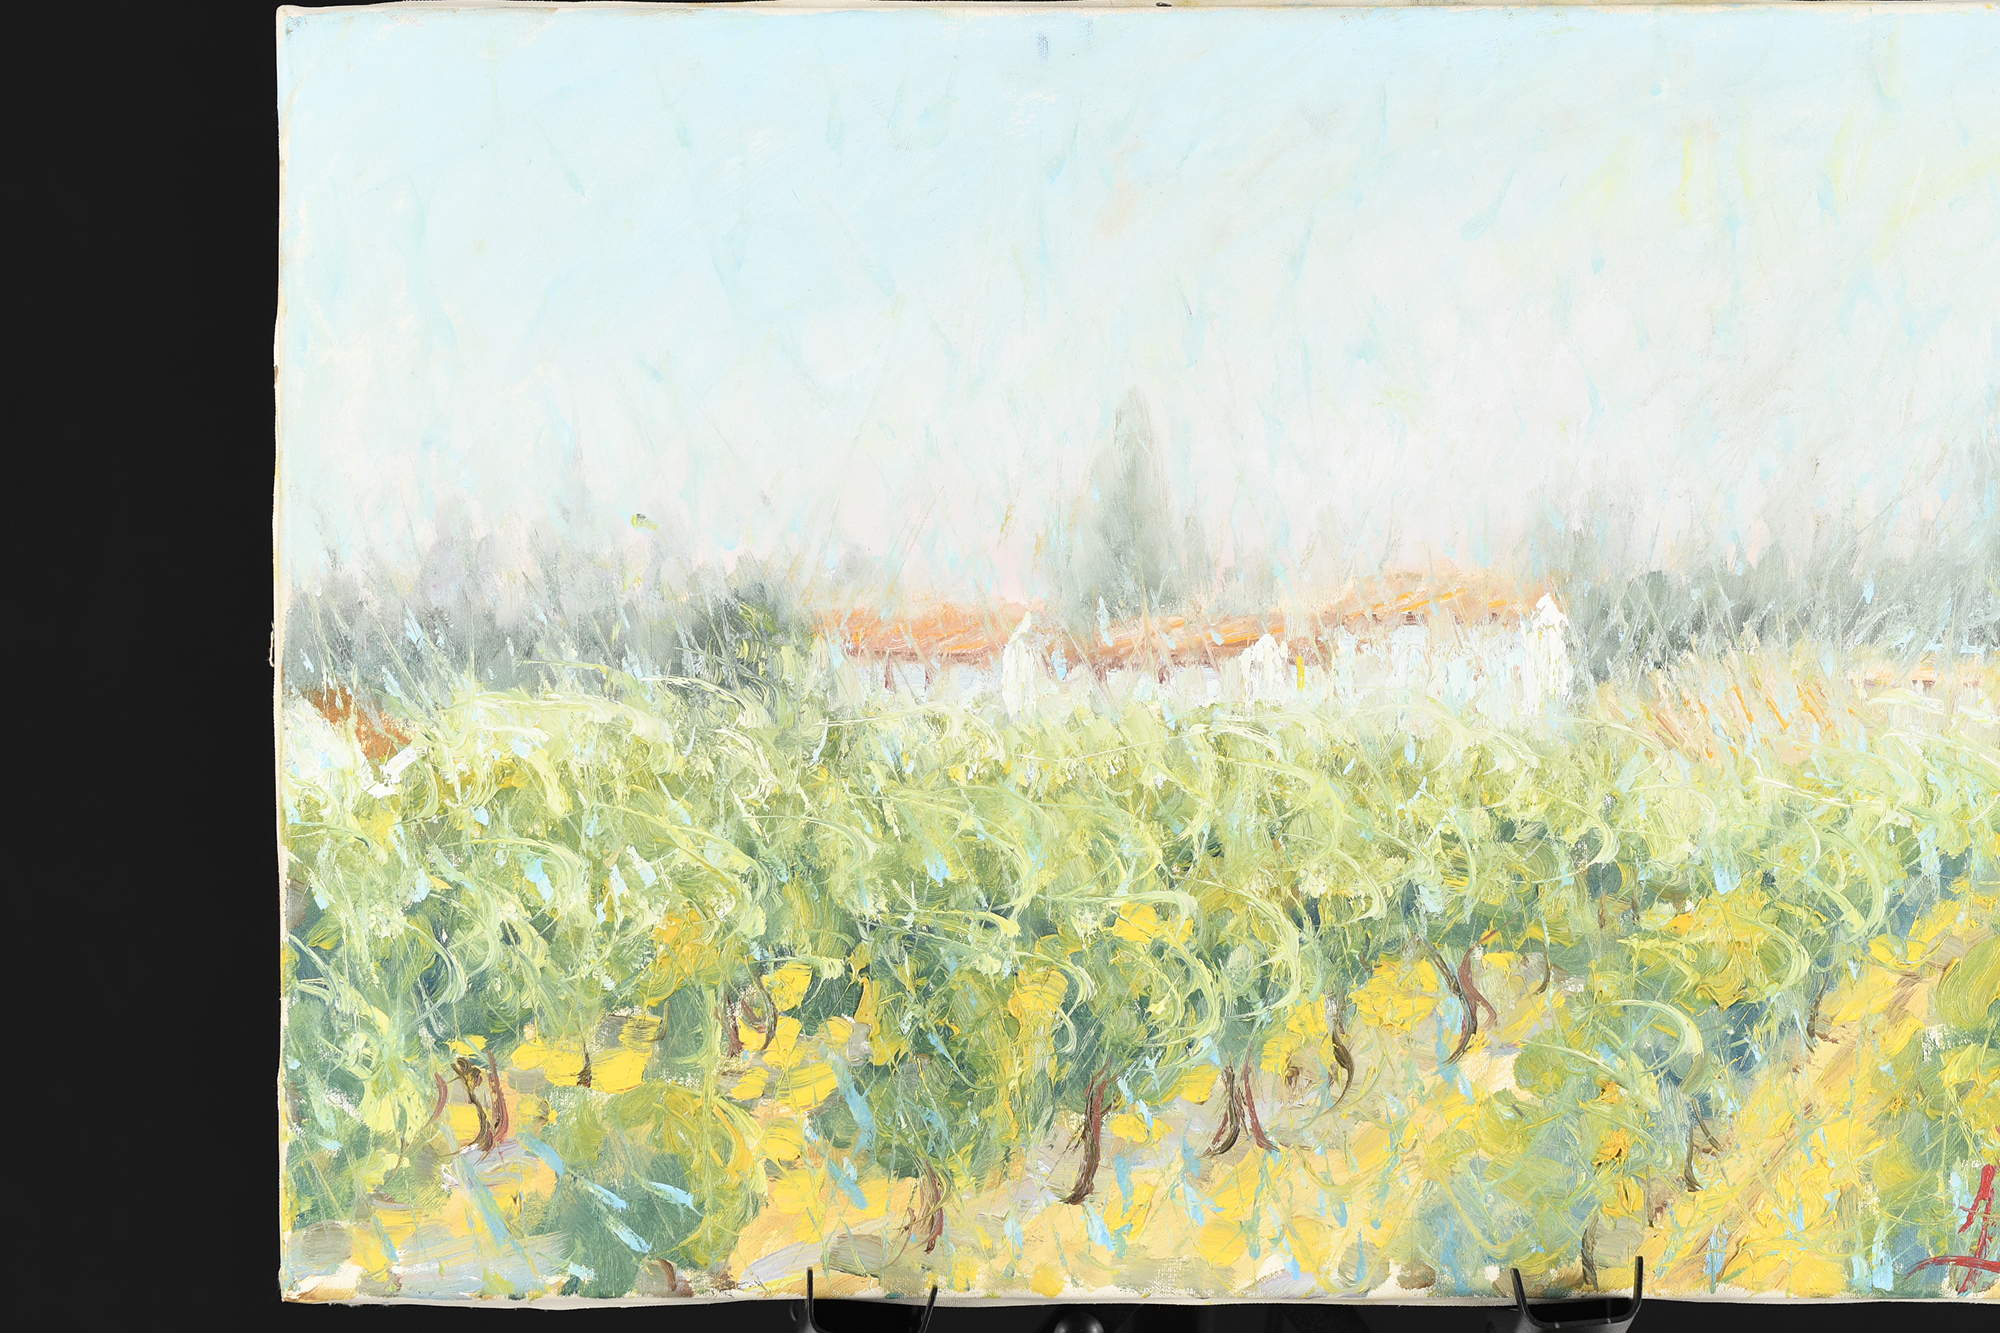 Original Oil on Canvas by Roberto Masia - Image 2 of 6